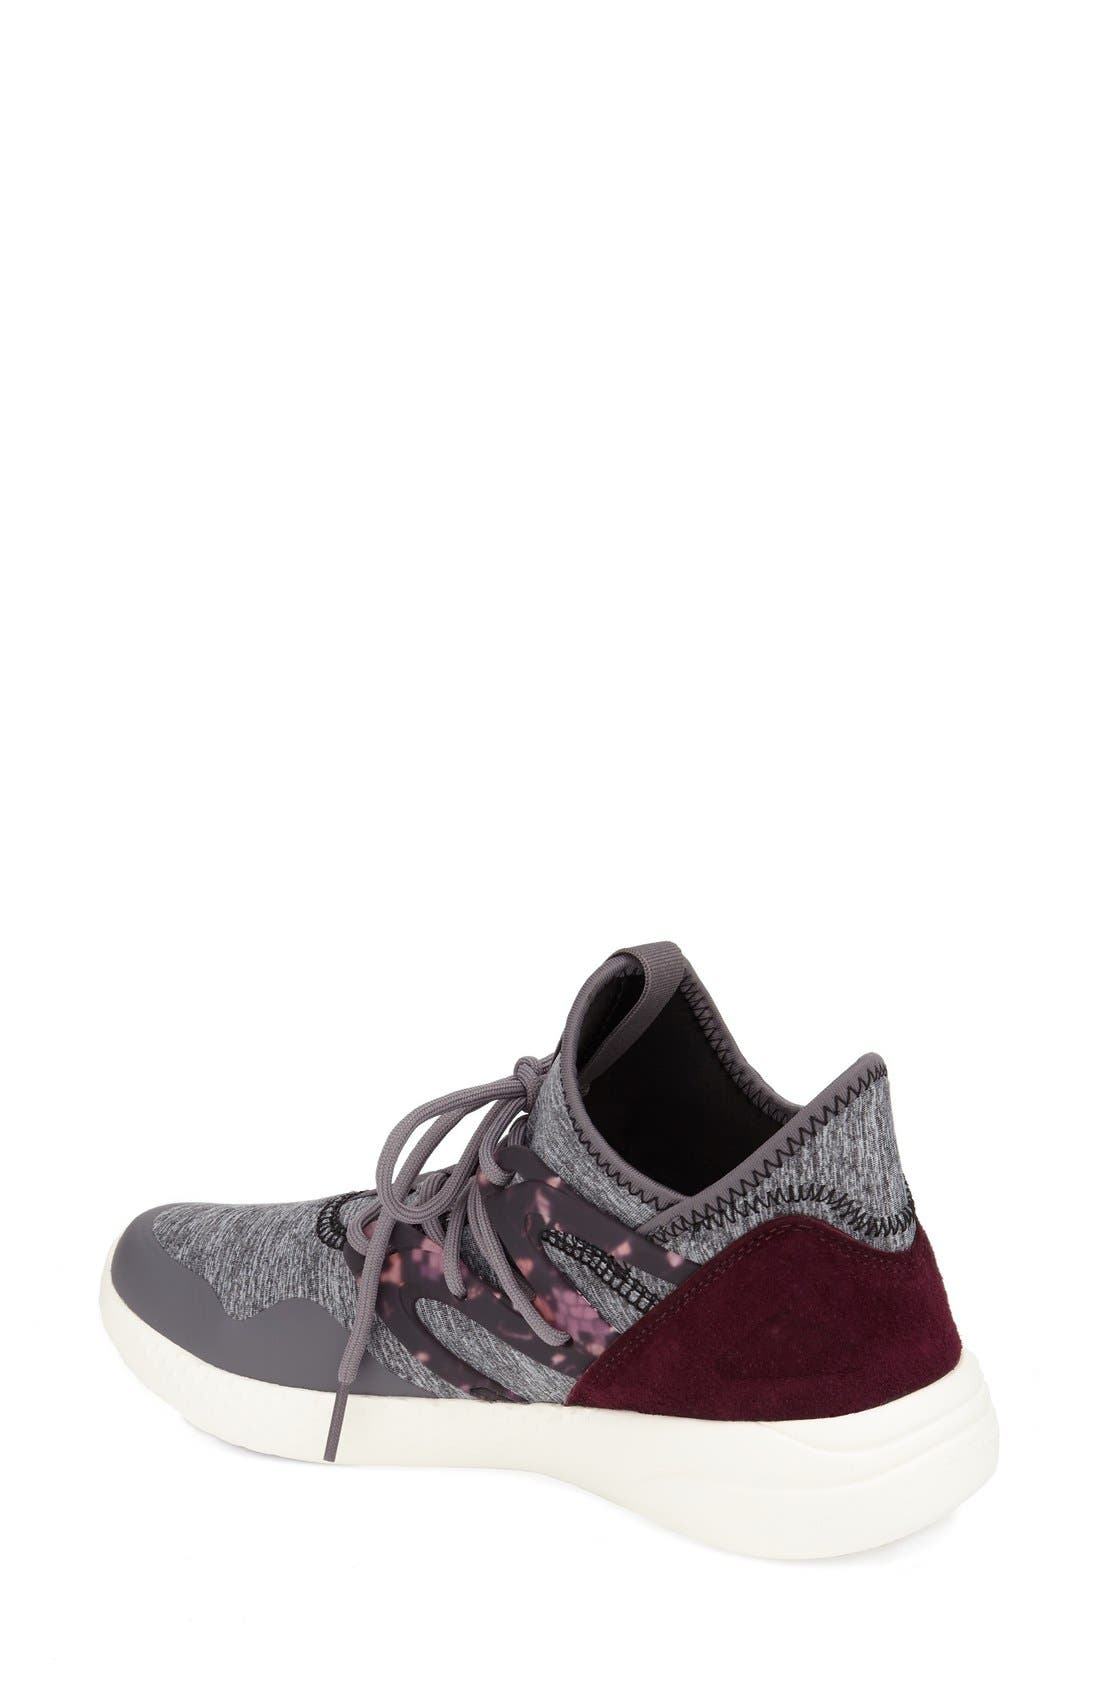 'Hayasu' Training Shoe,                             Alternate thumbnail 18, color,